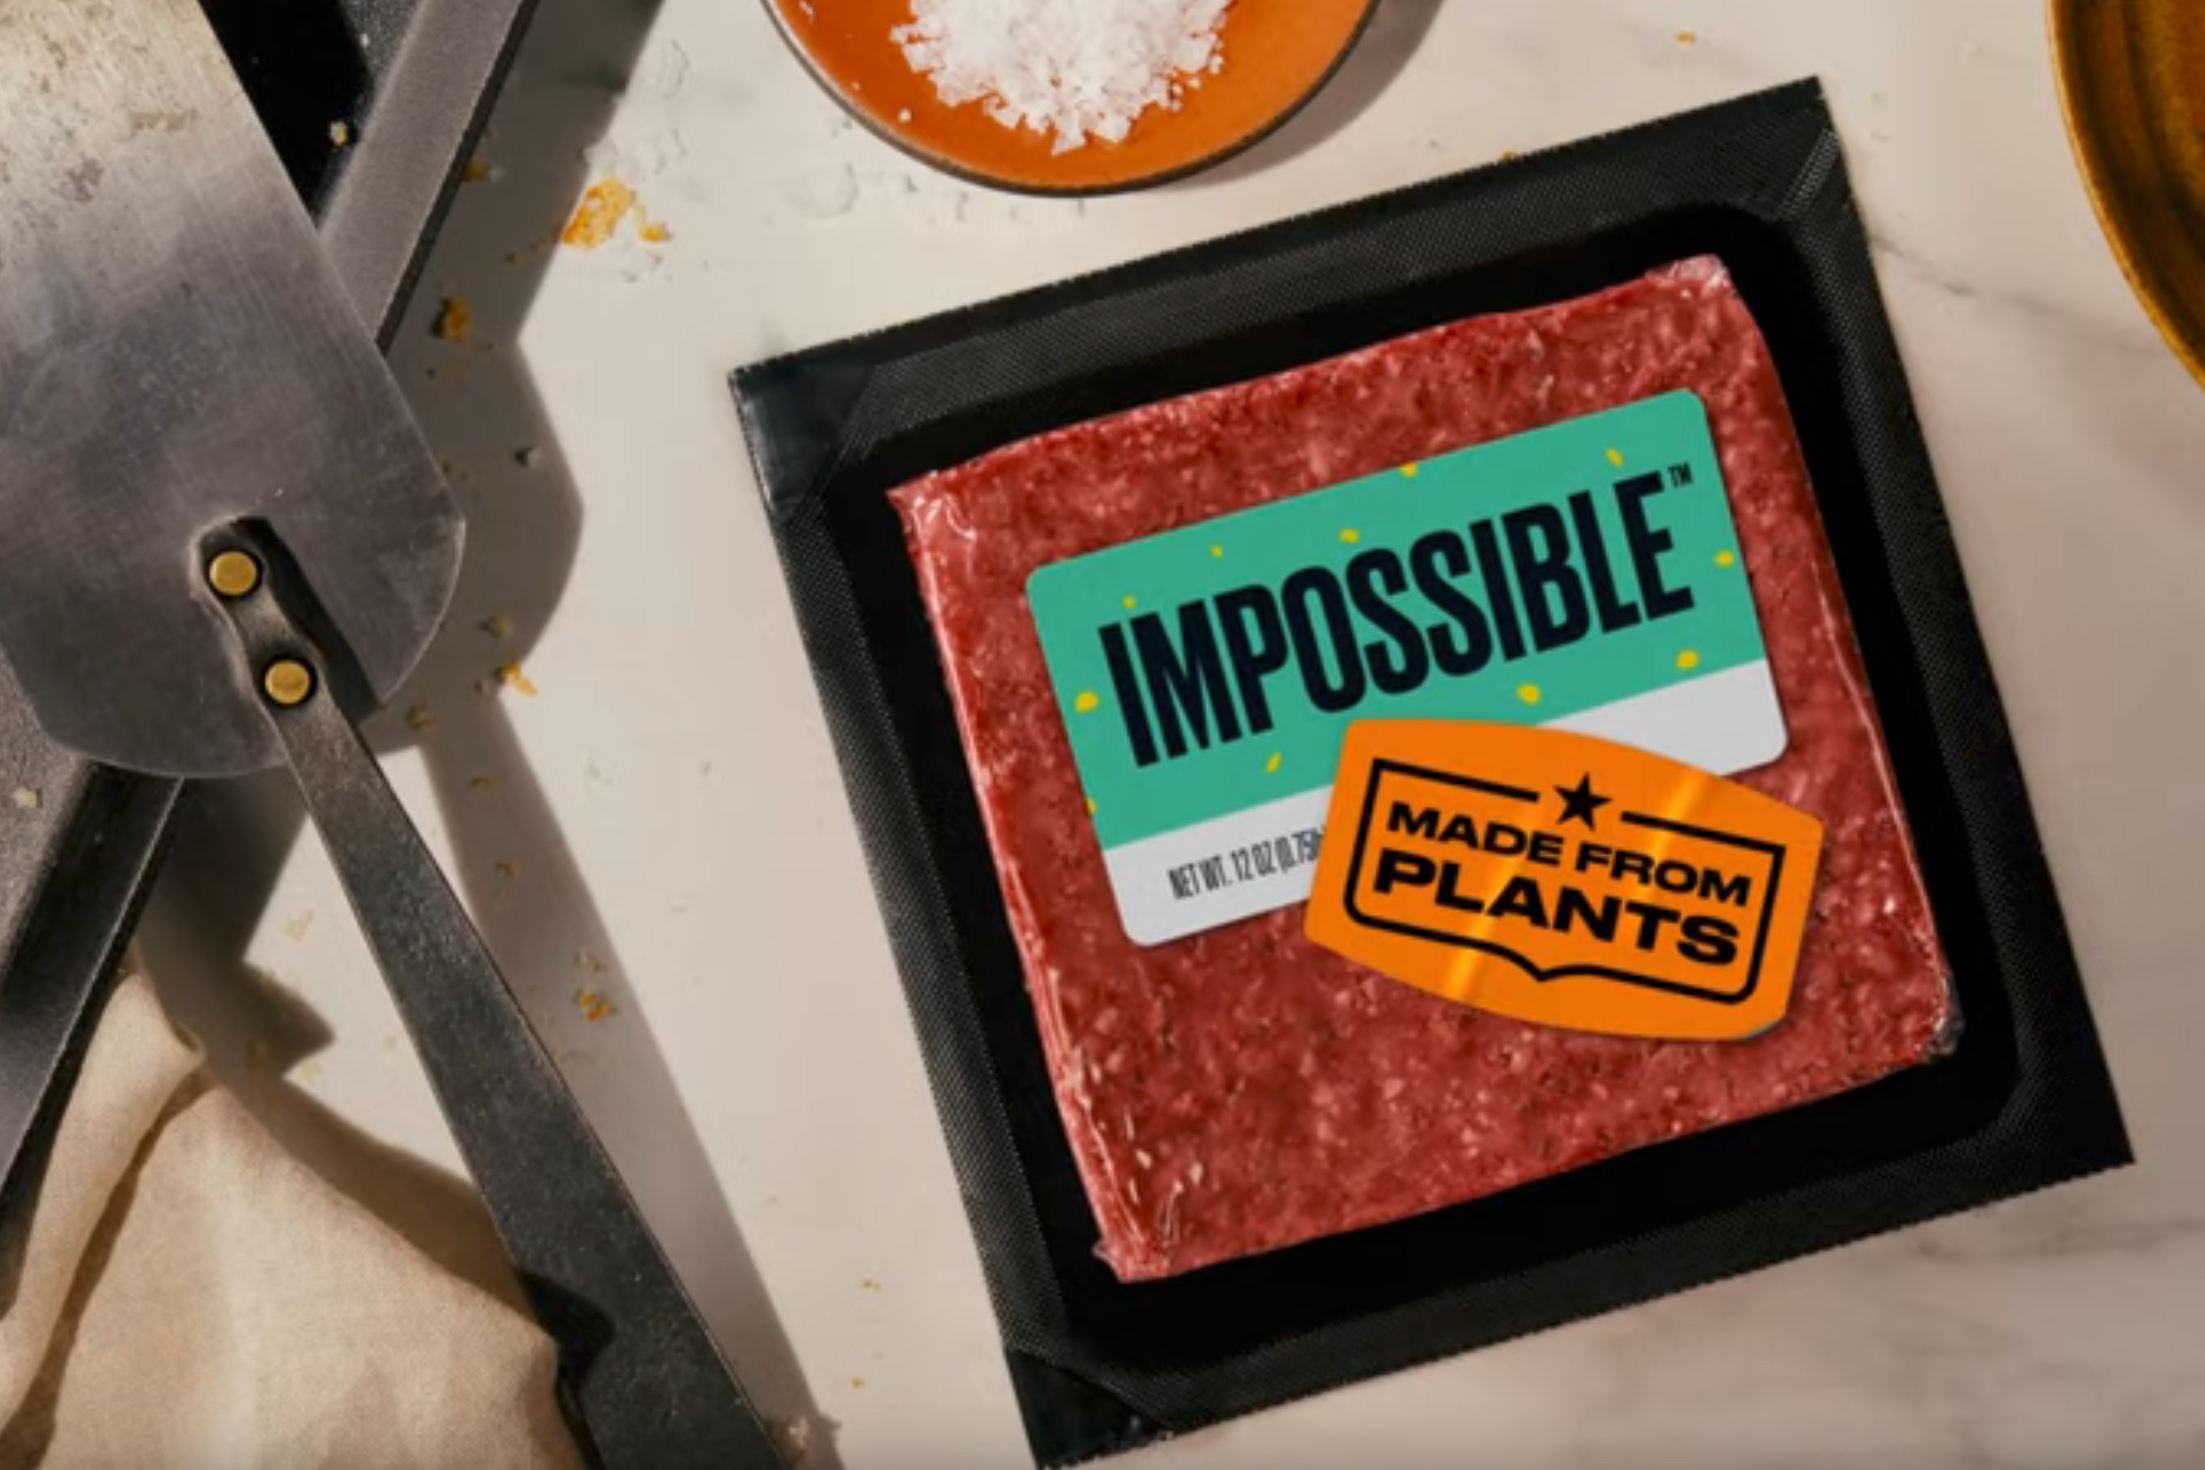 Impossible Foods: We Love Meat